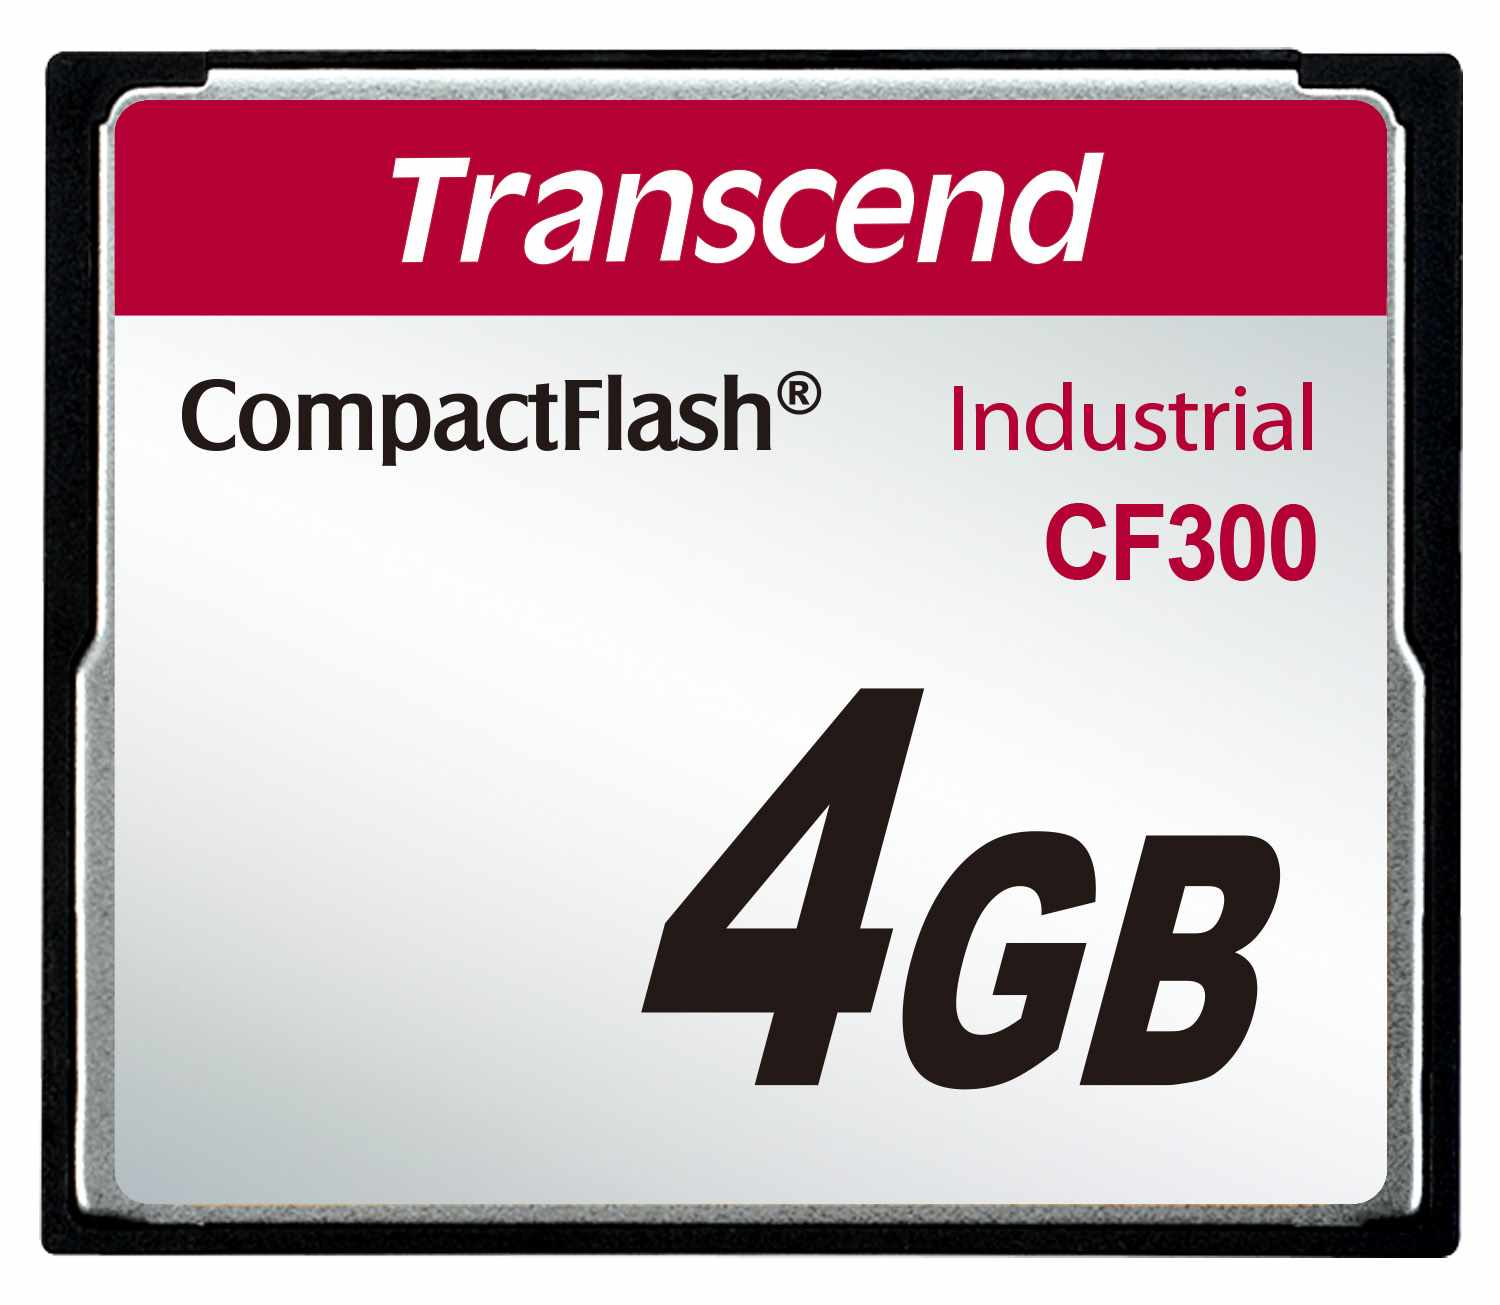 TRANSCEND Industrial Compact Flash Card CF300 4GB, SLC (300X, UDMA5, TYPE I)